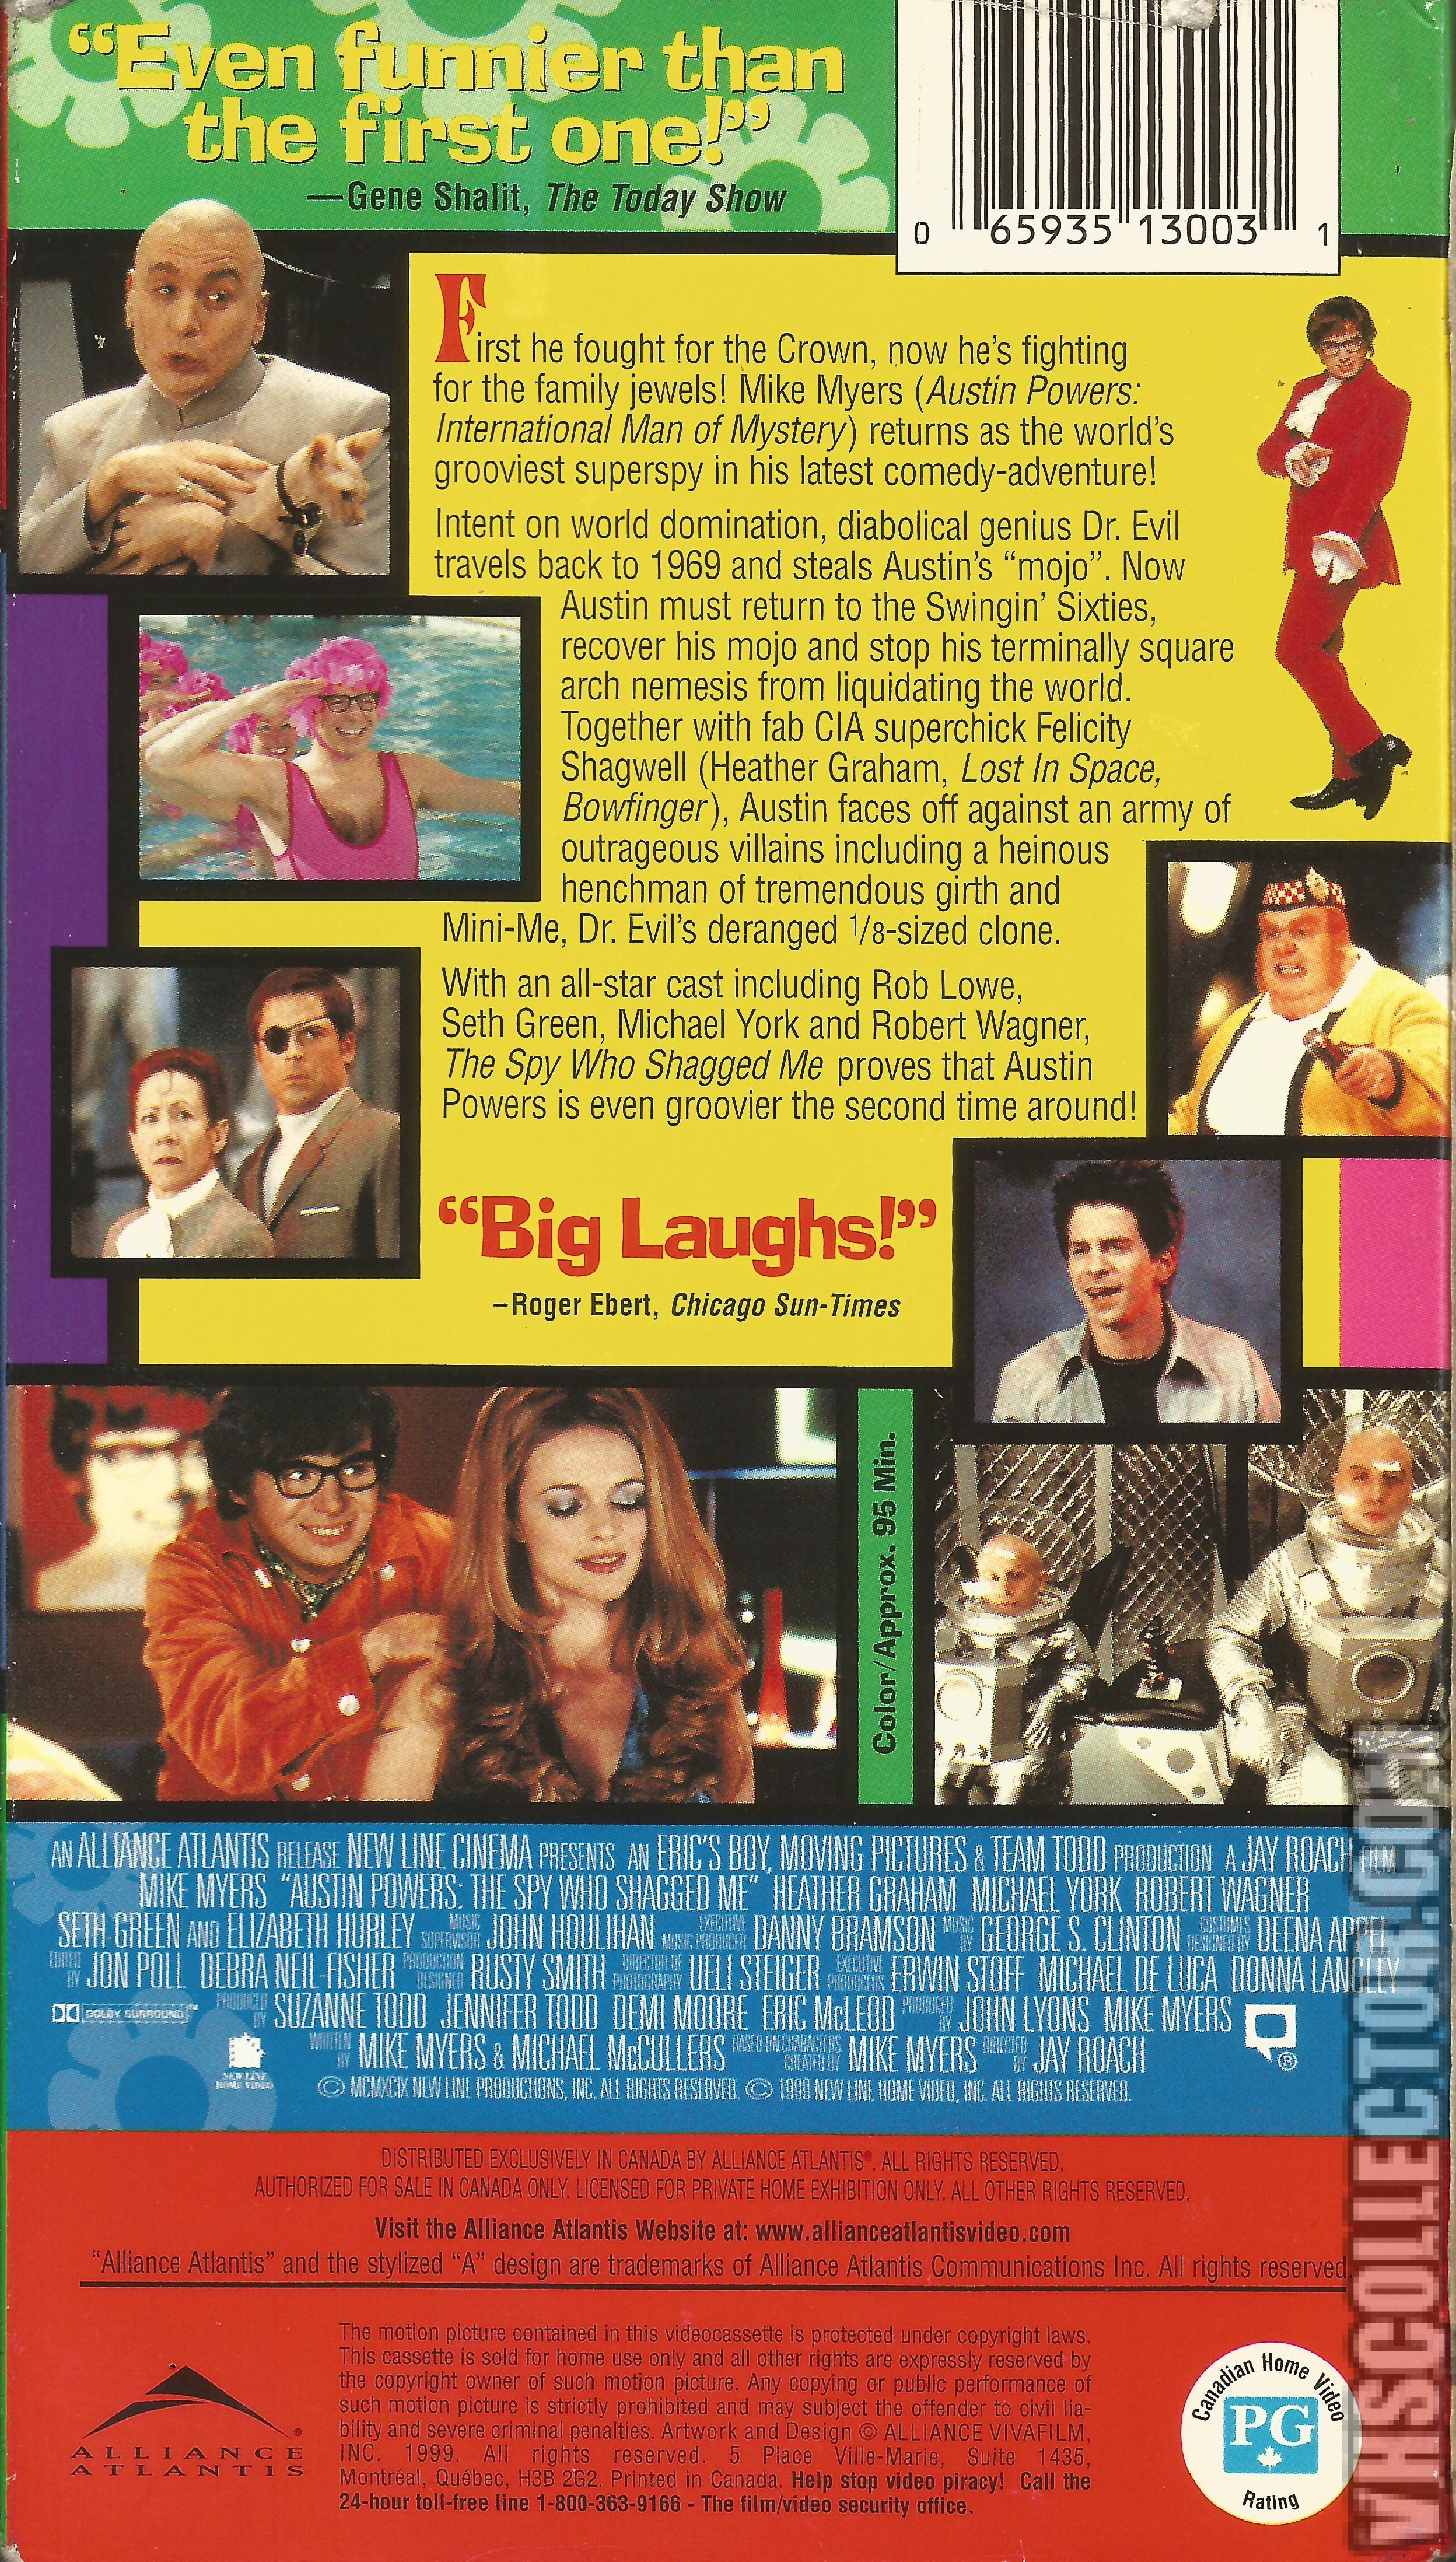 Austin Powers: The Spy Who Shagged Me Backgrounds, Compatible - PC, Mobile, Gadgets| 2496x4392 px